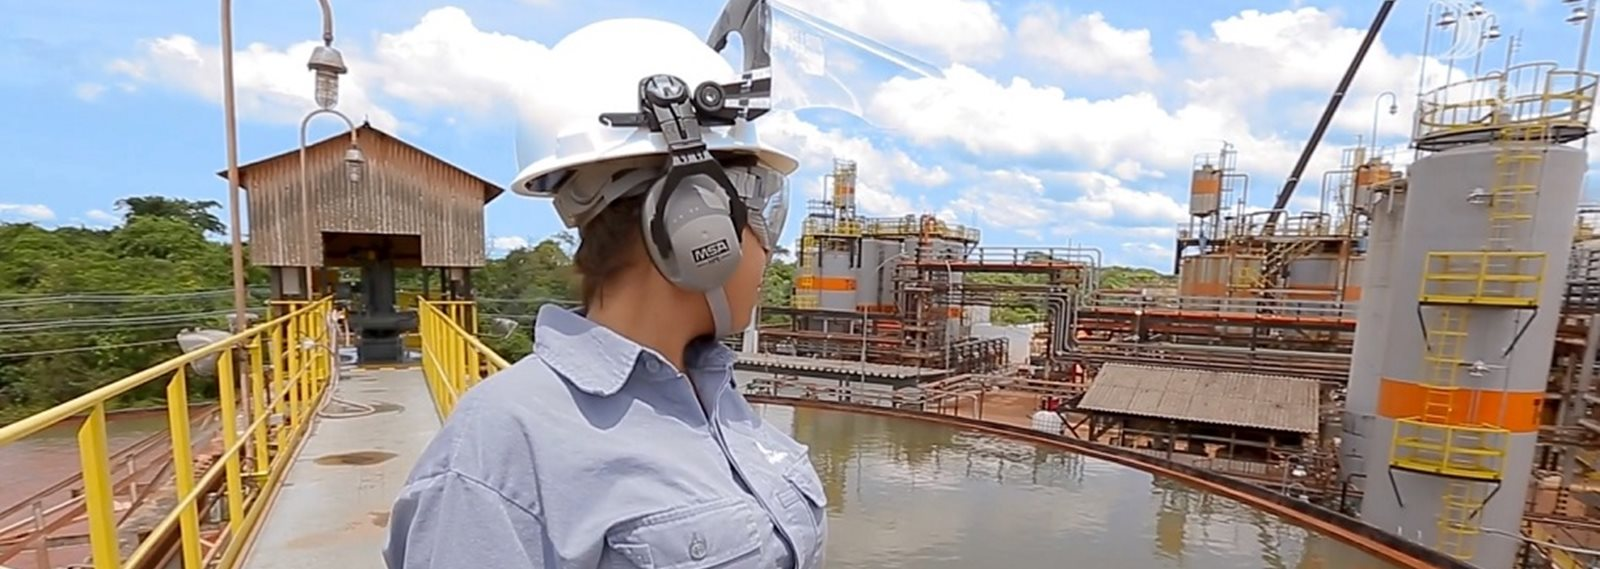 Alunorte's female employee stands watching the company's water treatment facility plant in the background